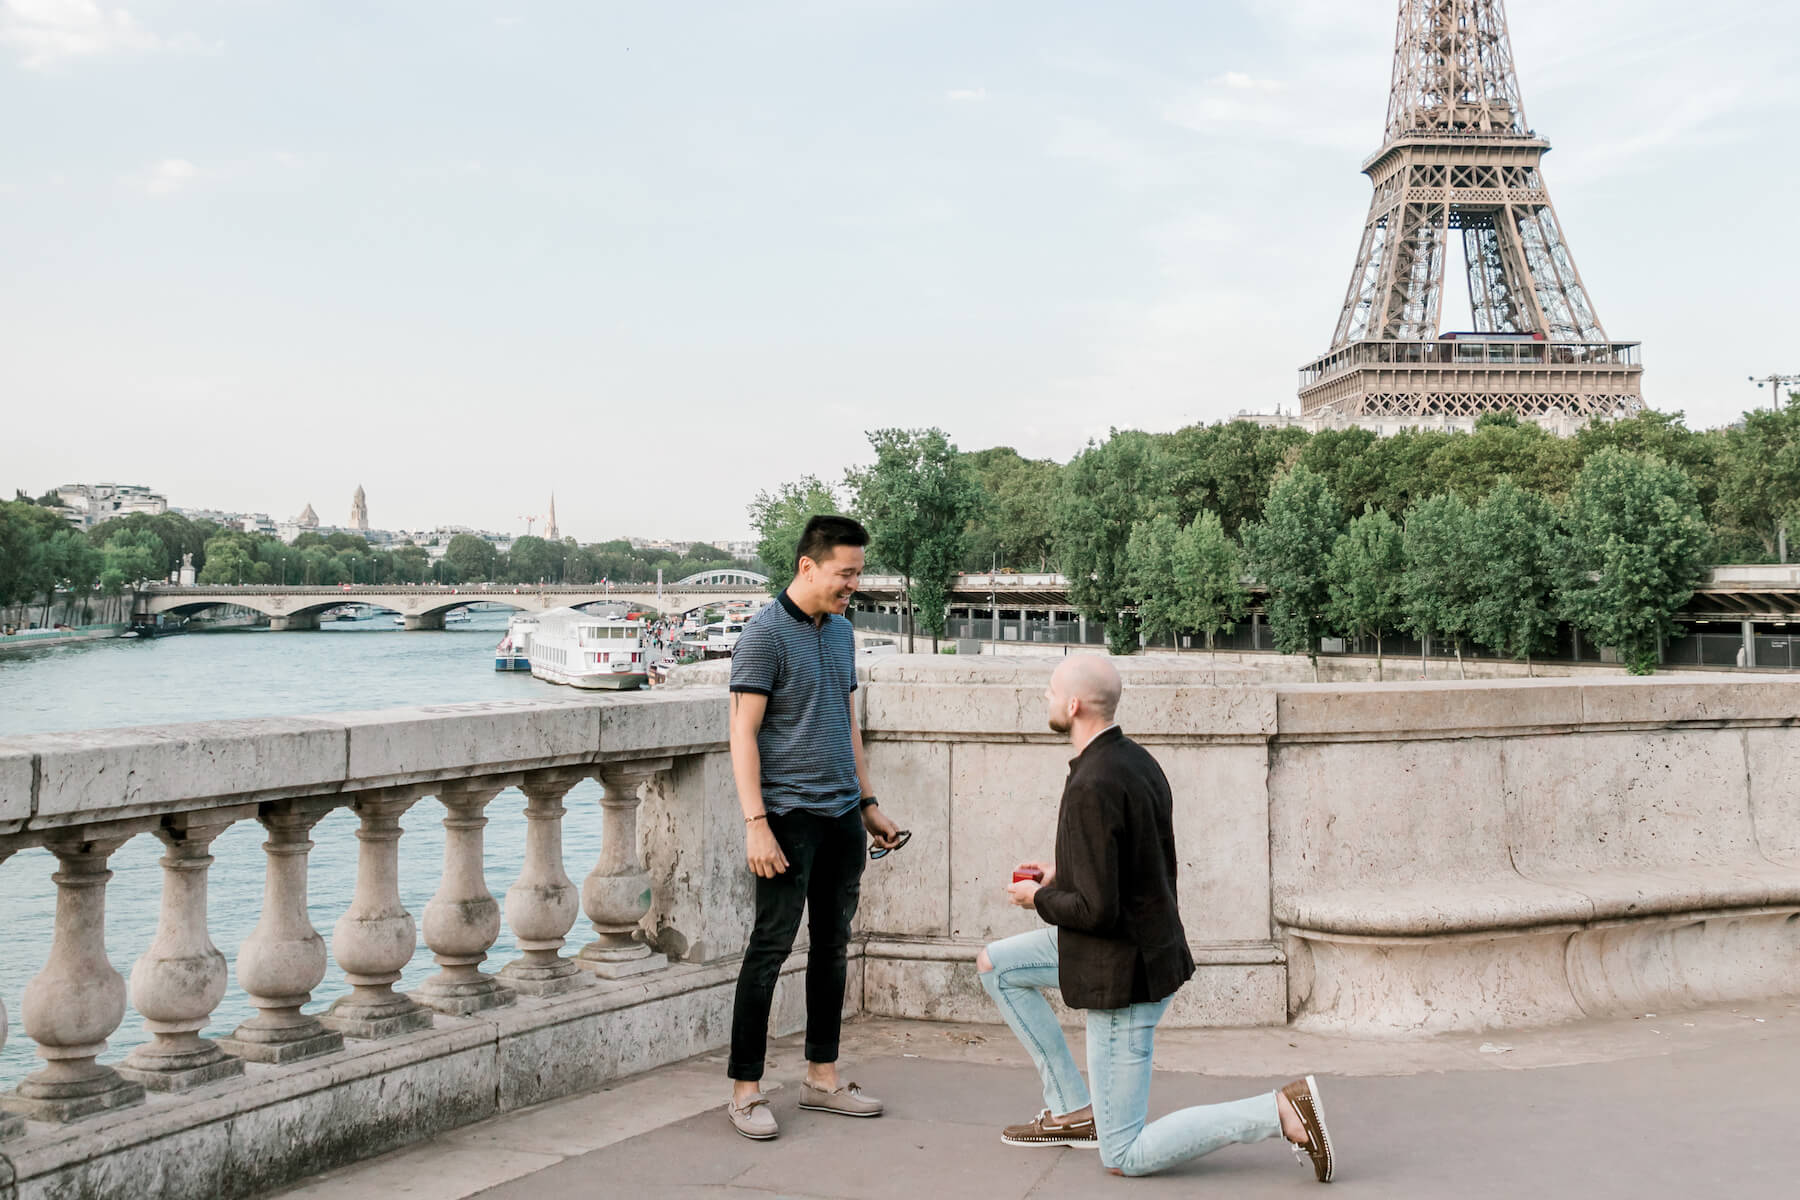 A man proposes on one knee in front of the Eiffel tower in Paris, France